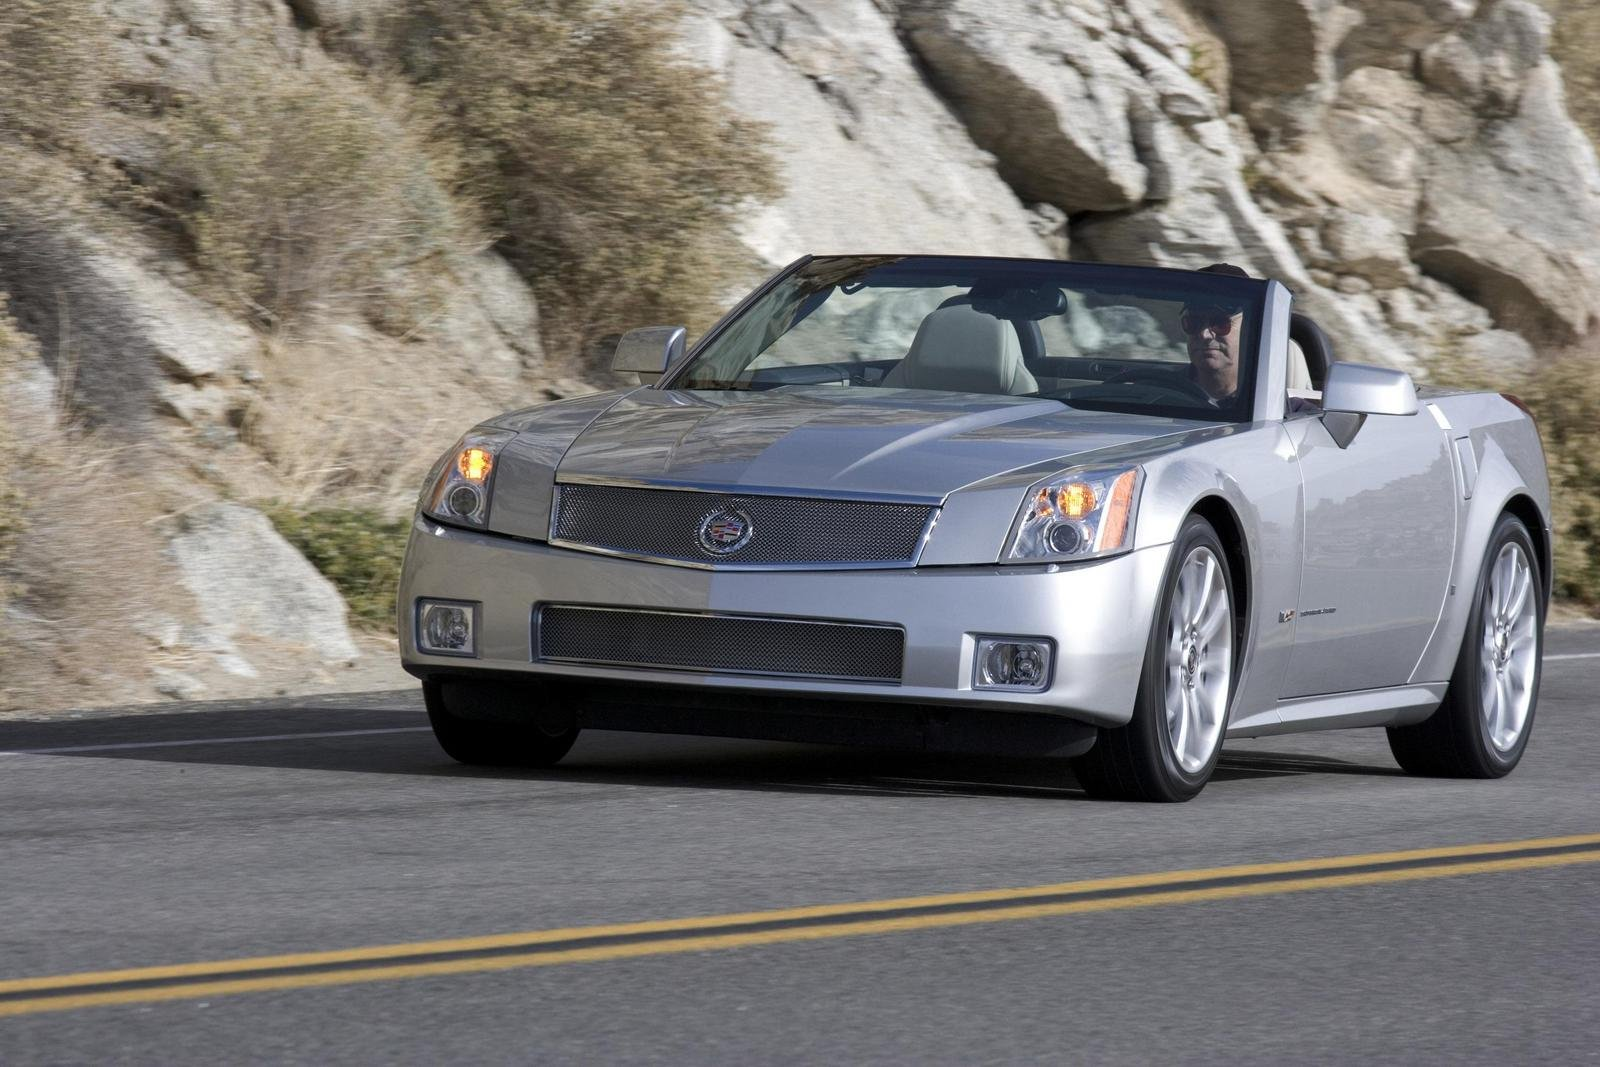 2007 Cadillac XLR-V Review - Top Speed